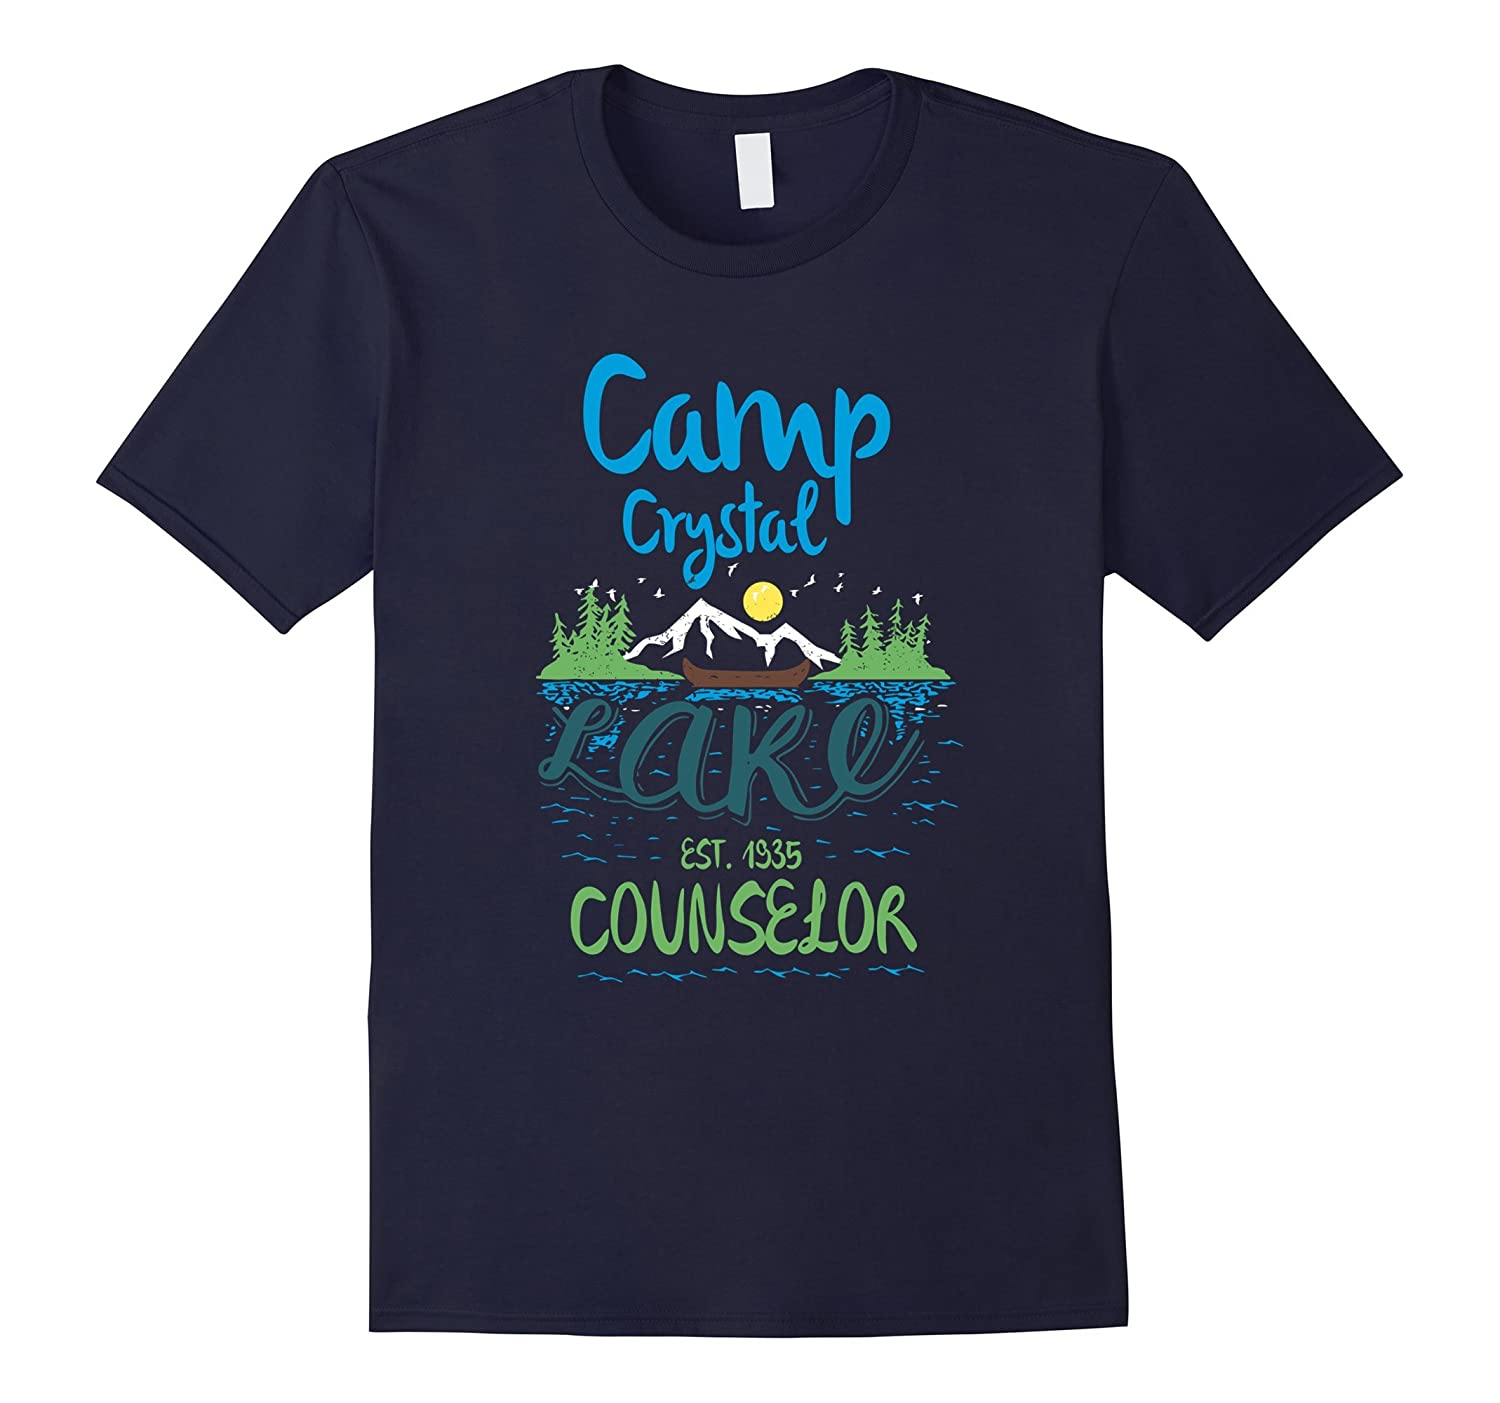 Camp Crystal Lake Counselor est. 1935 Shirt-T-Shirt